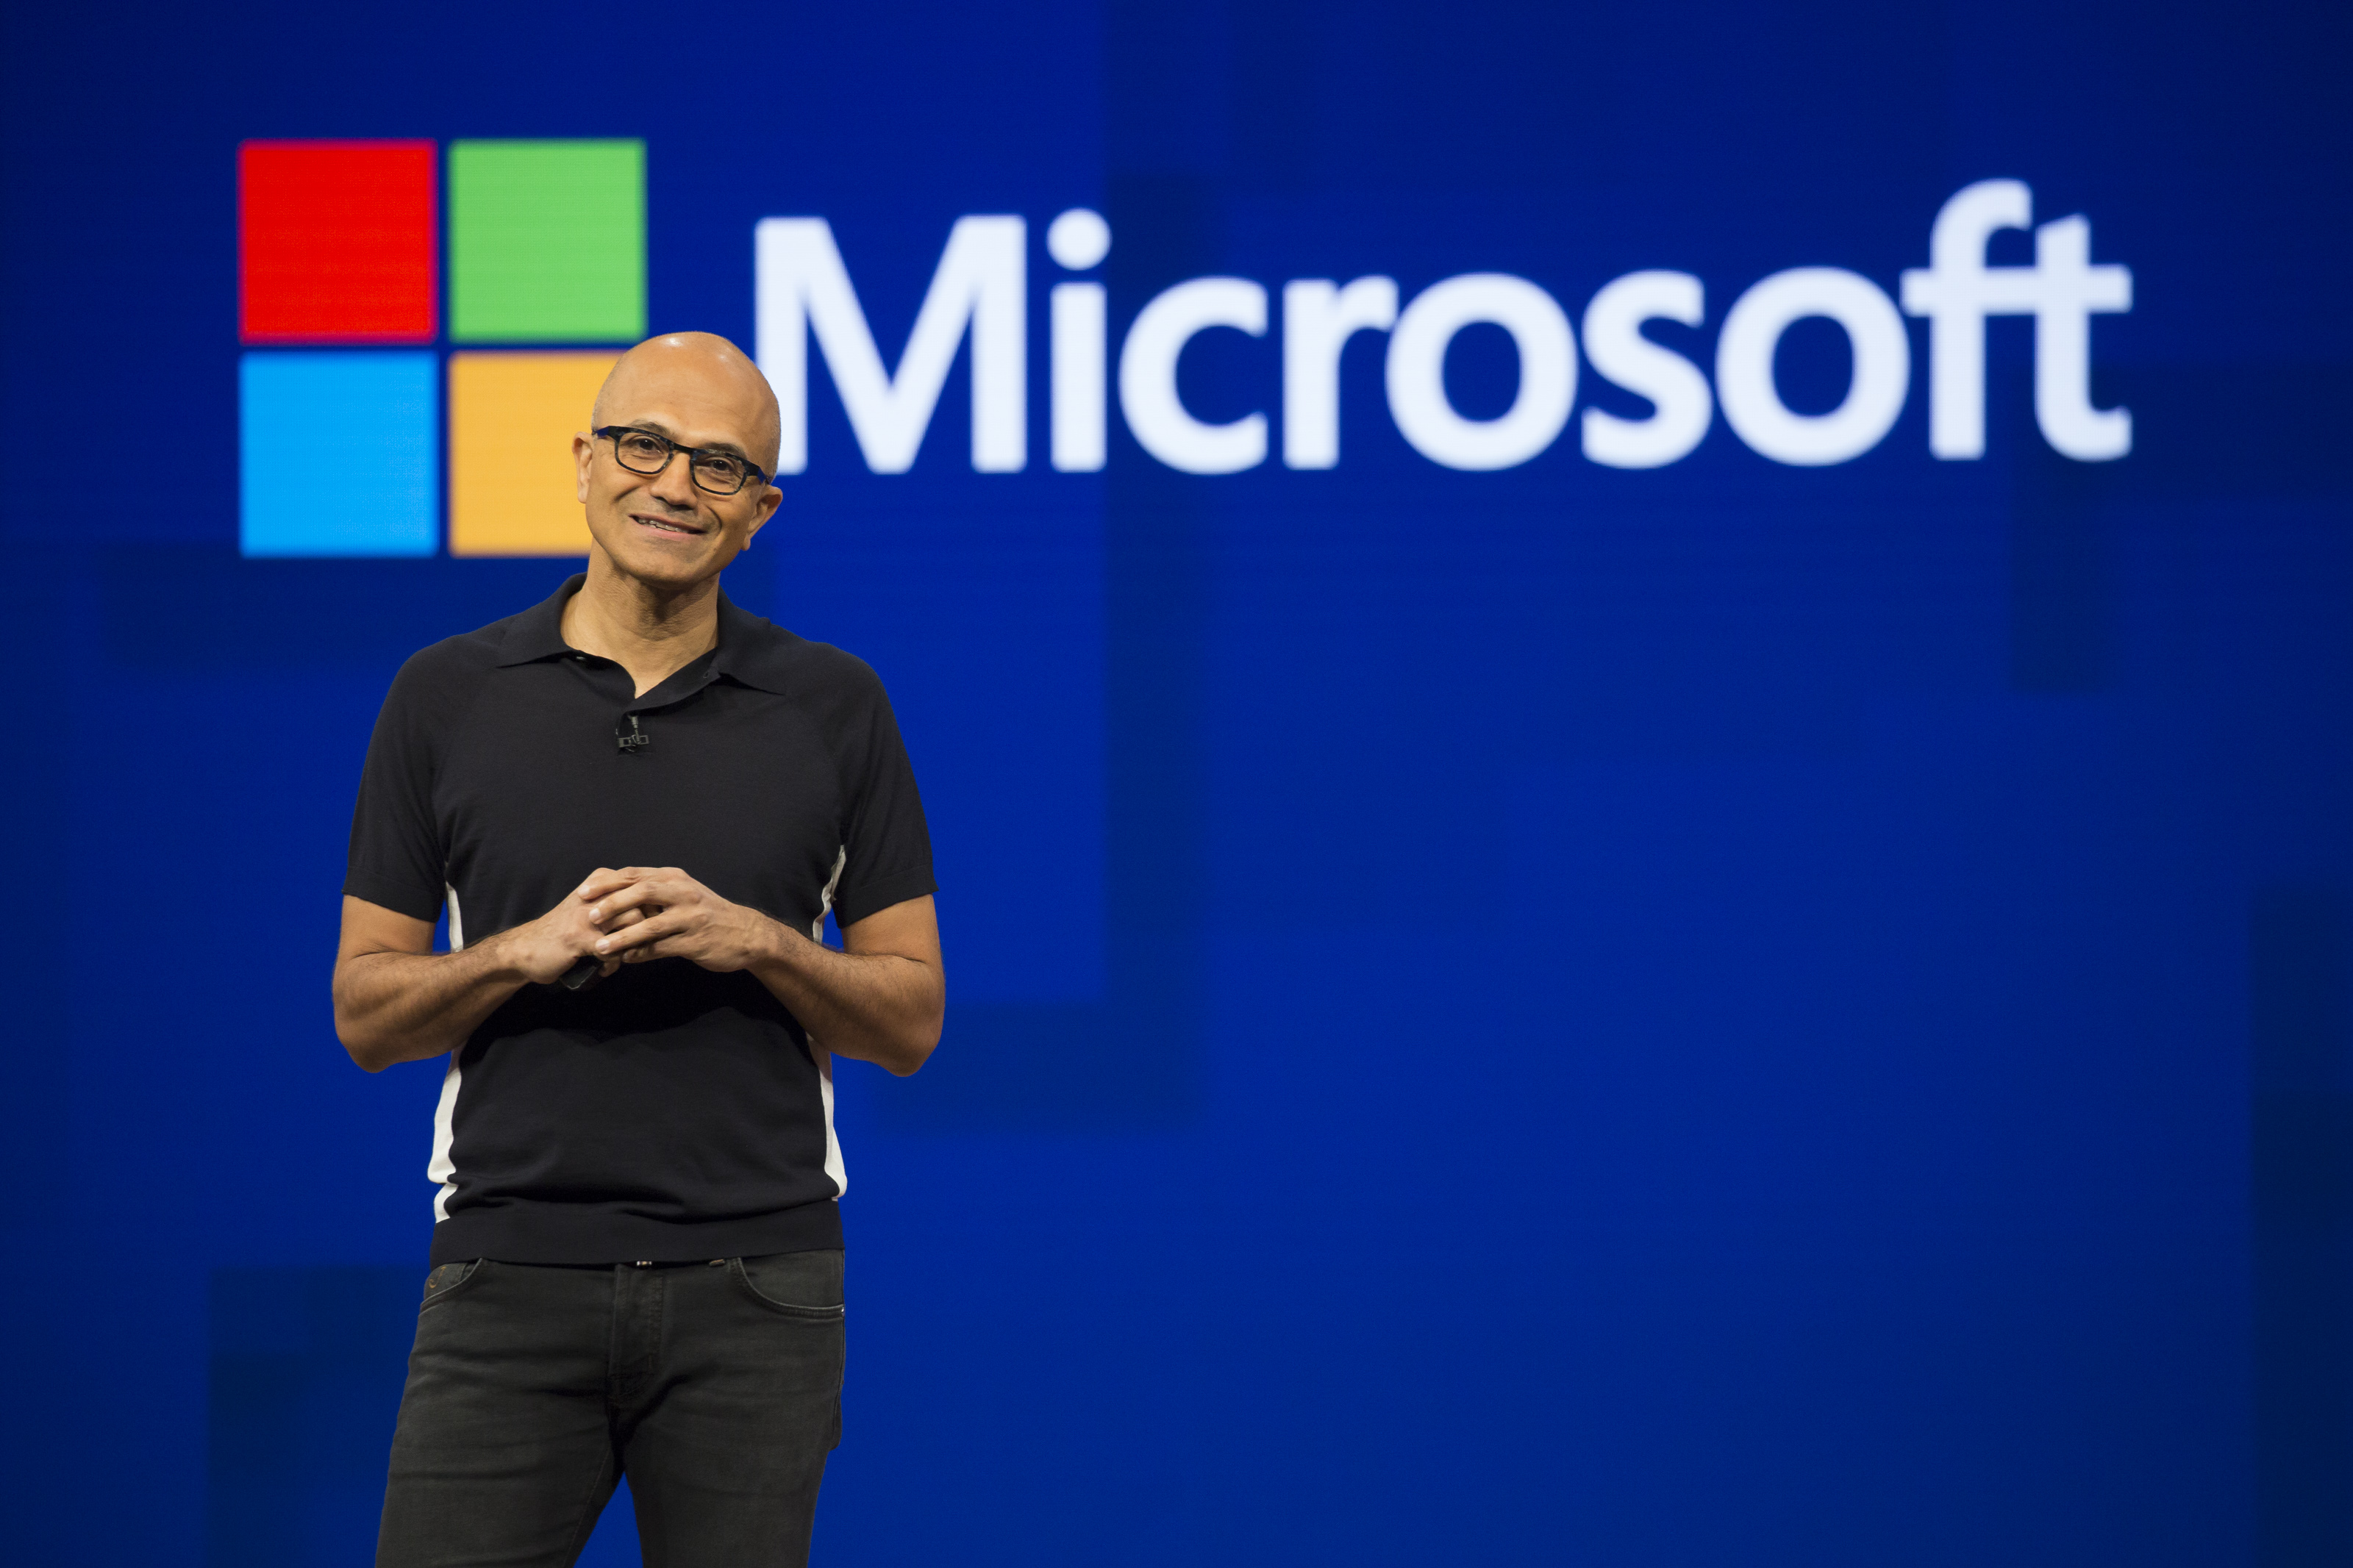 Satya Nadella, chief executive officer of Microsoft Corp., smiles during Microsoft Developers Build Conference in Seattle, Washington, U.S., on Wednesday, May 10, 2017.